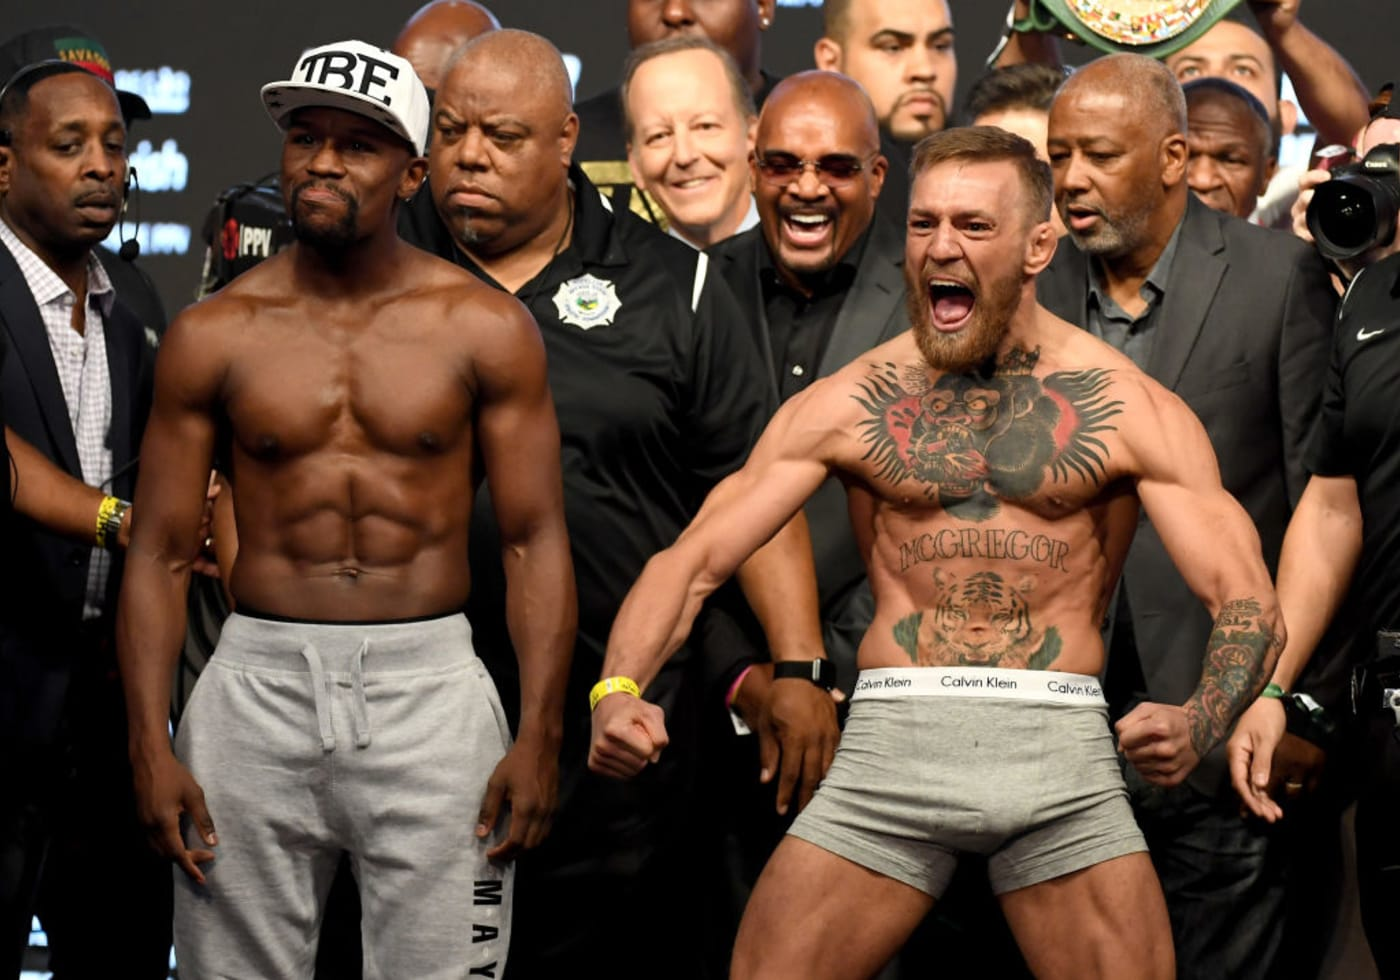 Conor McGregor Floyd Mayweather Weigh In 2017 T Mobile